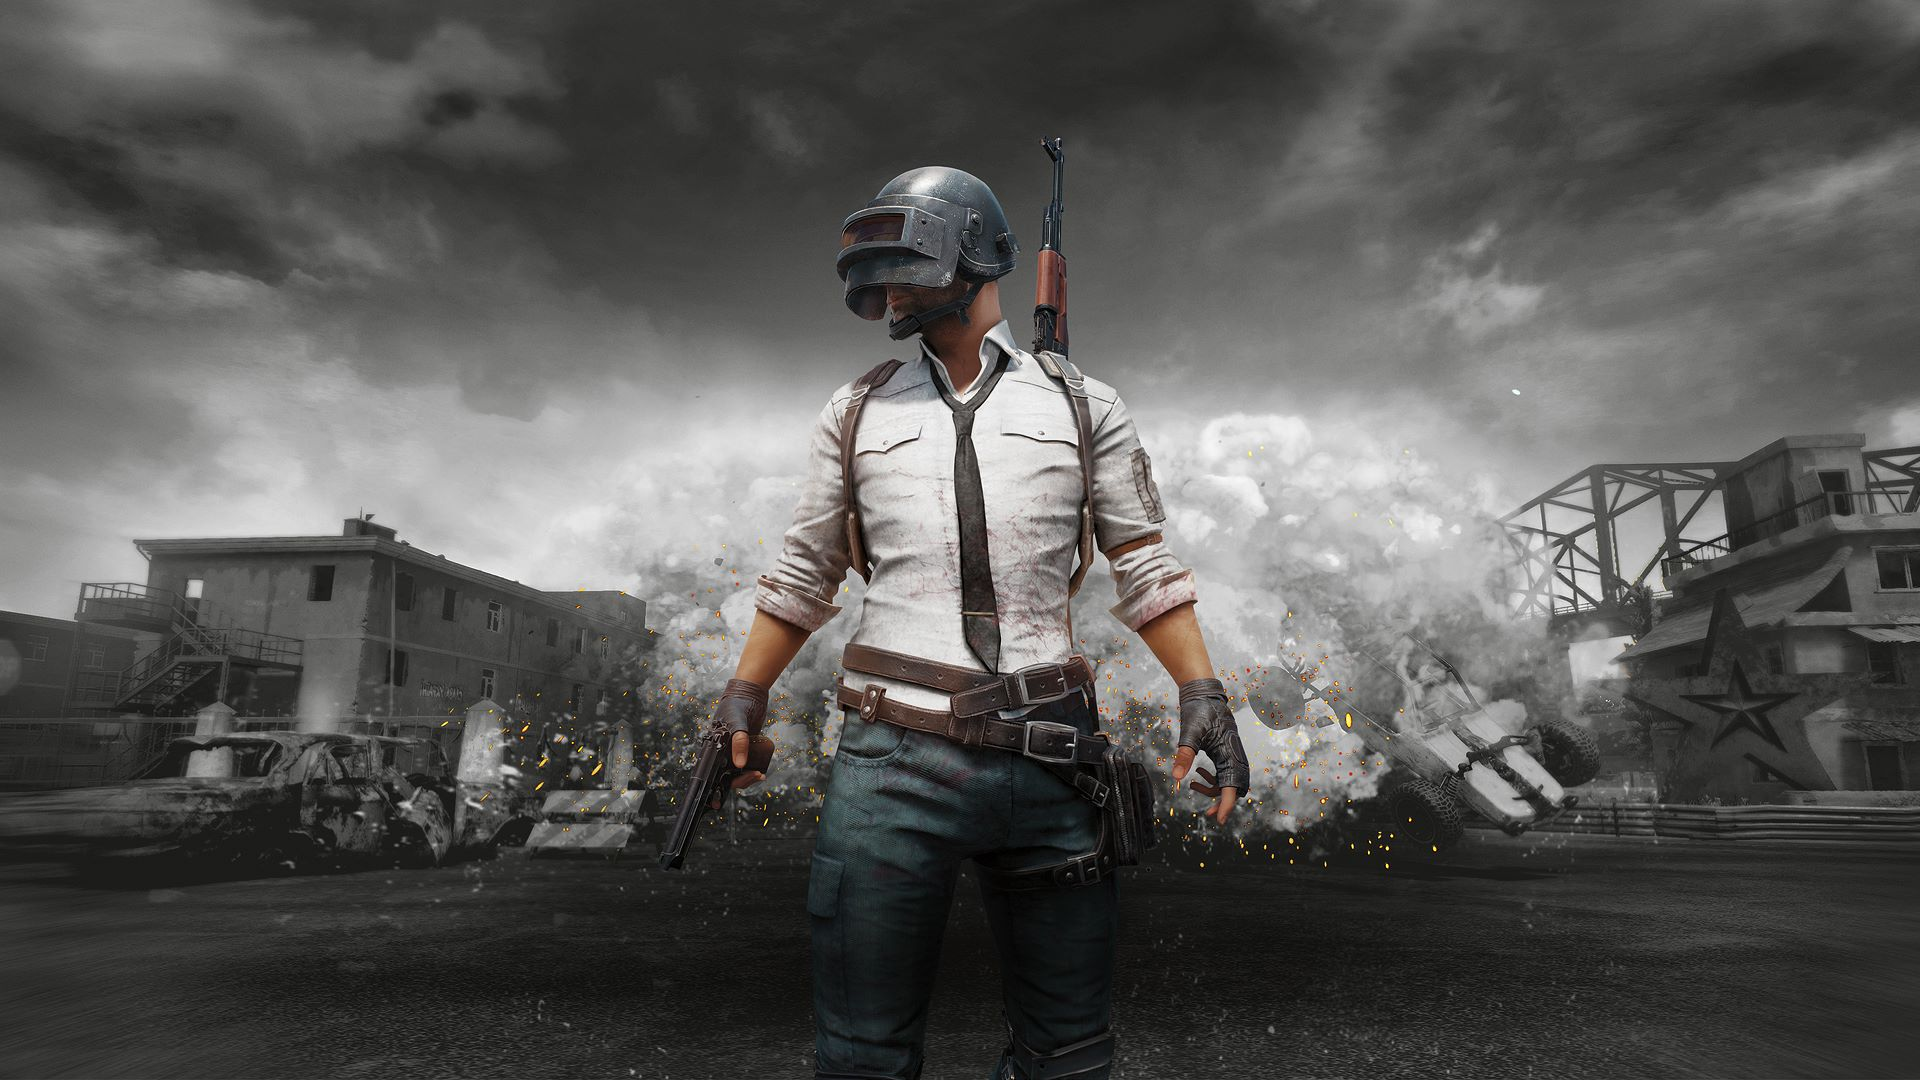 How to Play PUBG Game Online Without Buying?